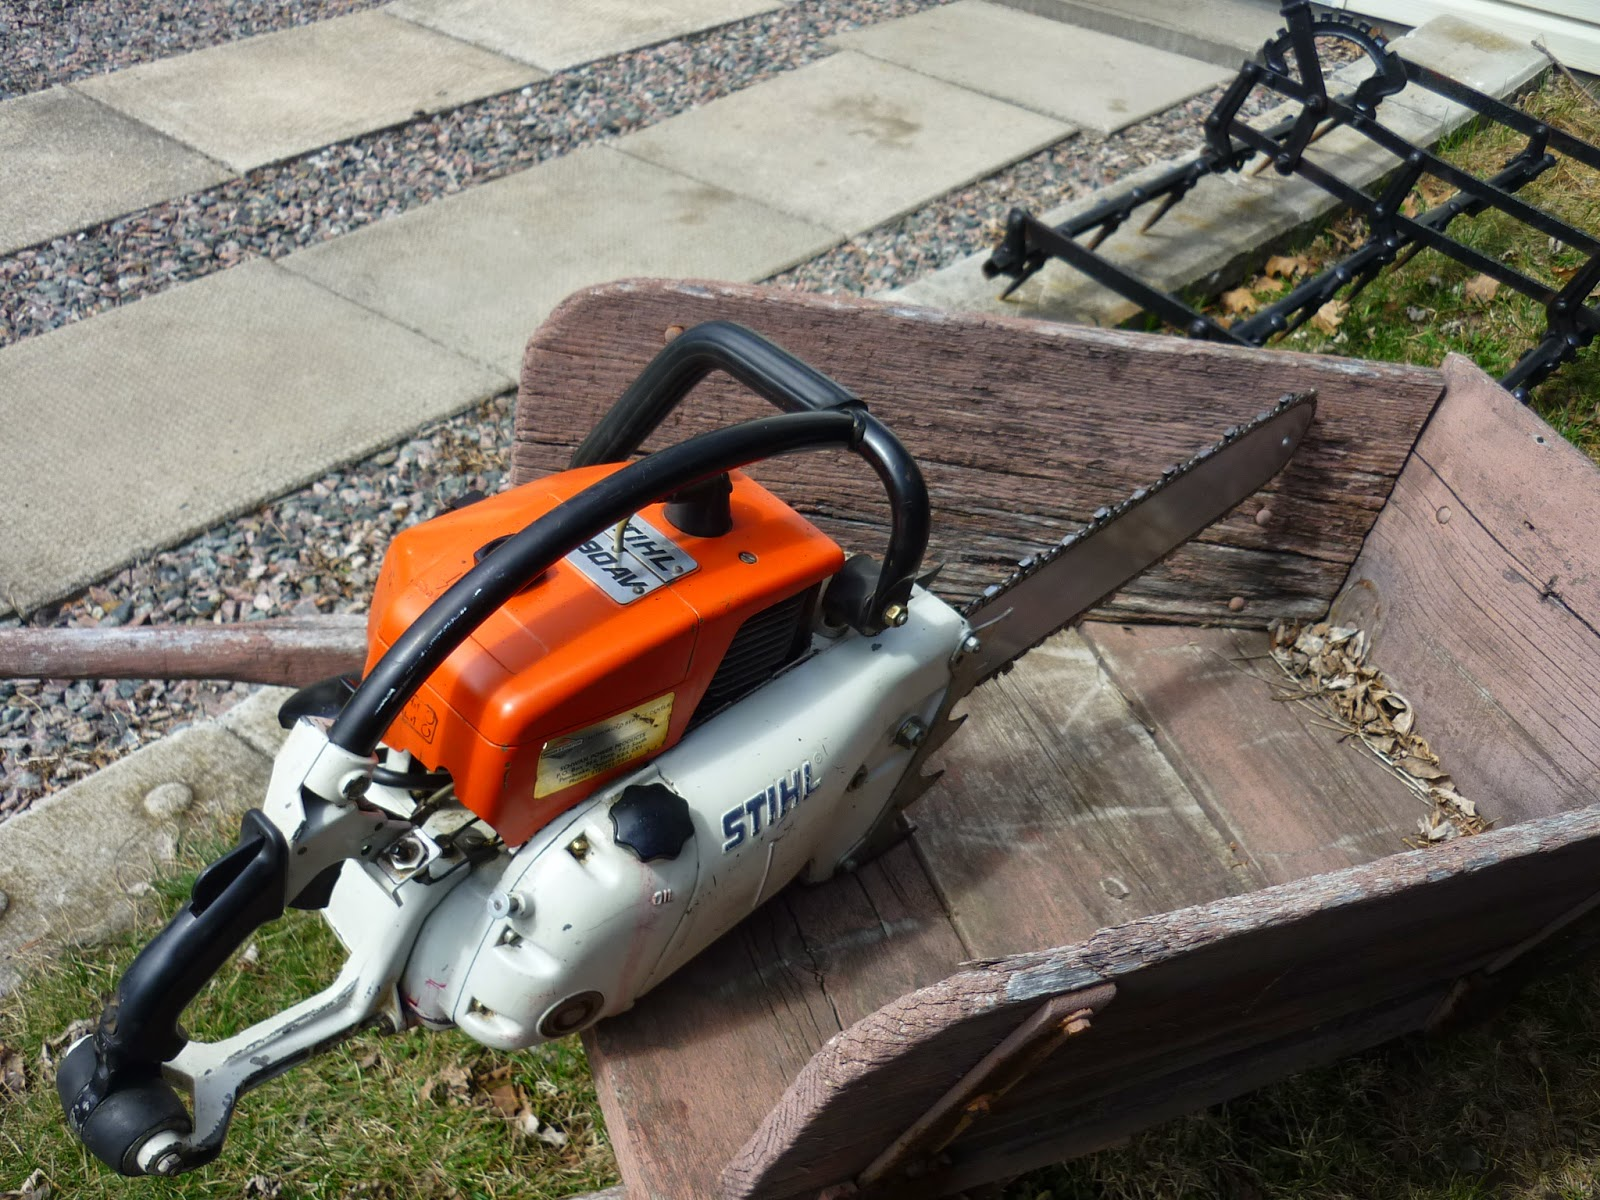 VINTAGE CHAINSAW COLLECTION: STIHL 090